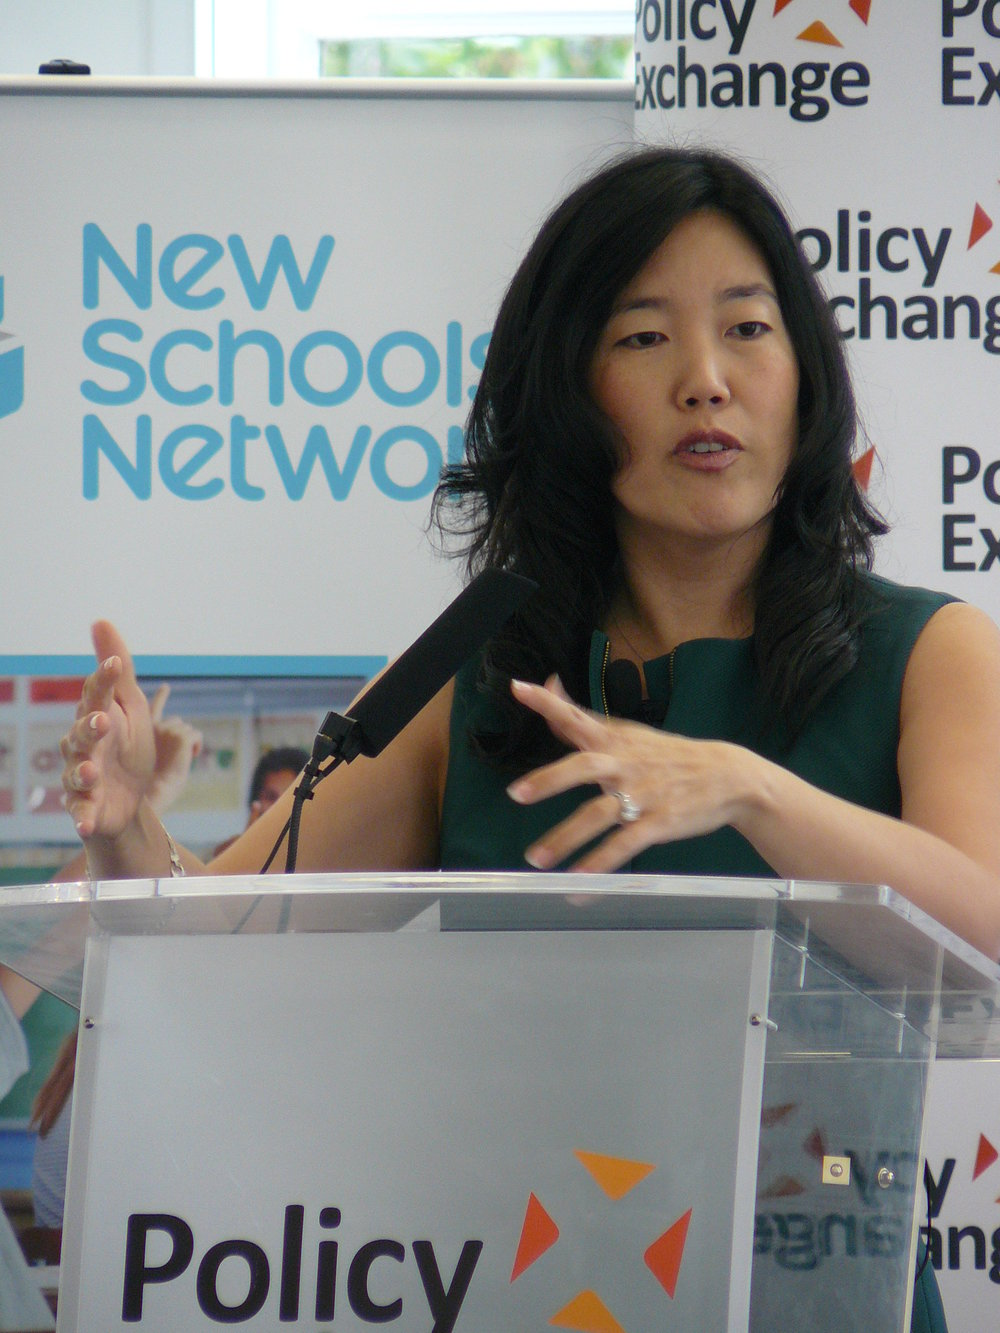 Flickr: StudentsFirst founder Michelle Rhee delivering her speech at Policy Exchange